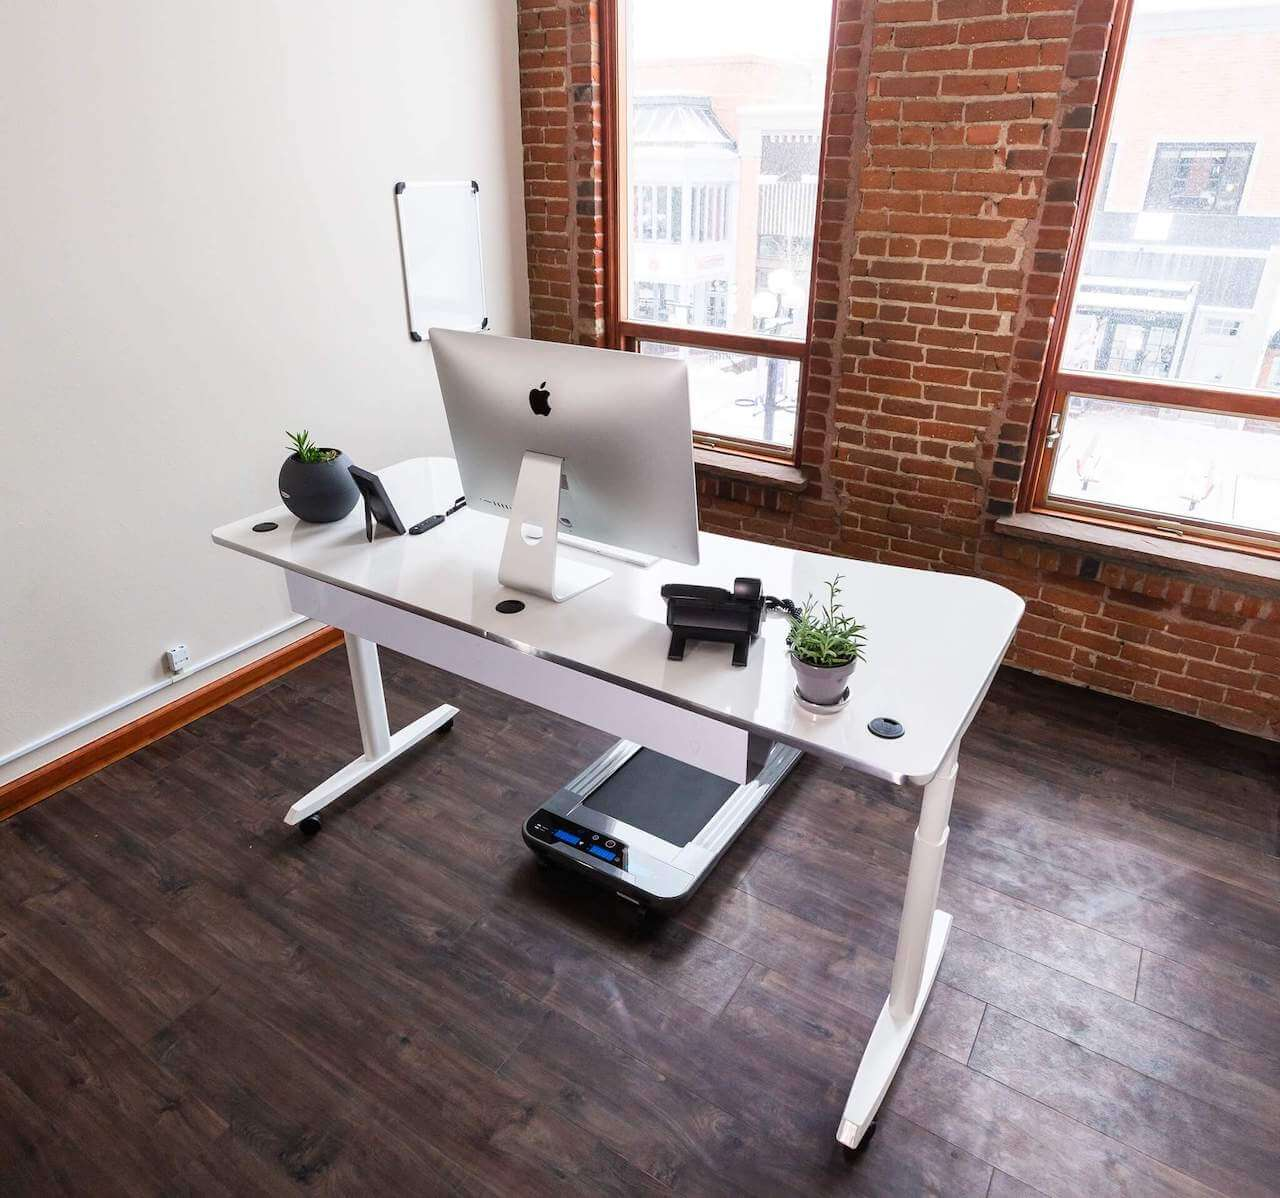 VERSA Powerlift electric standing desk